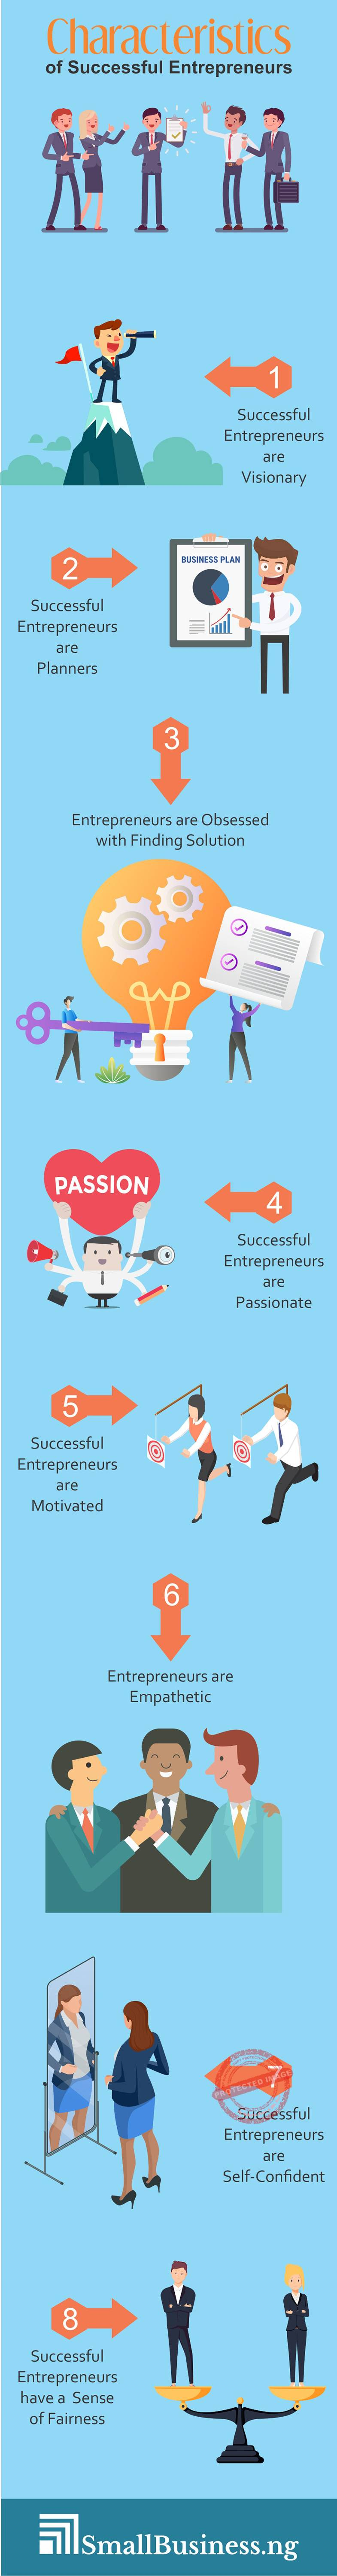 Characteristics of successful entrepreneurs infographic